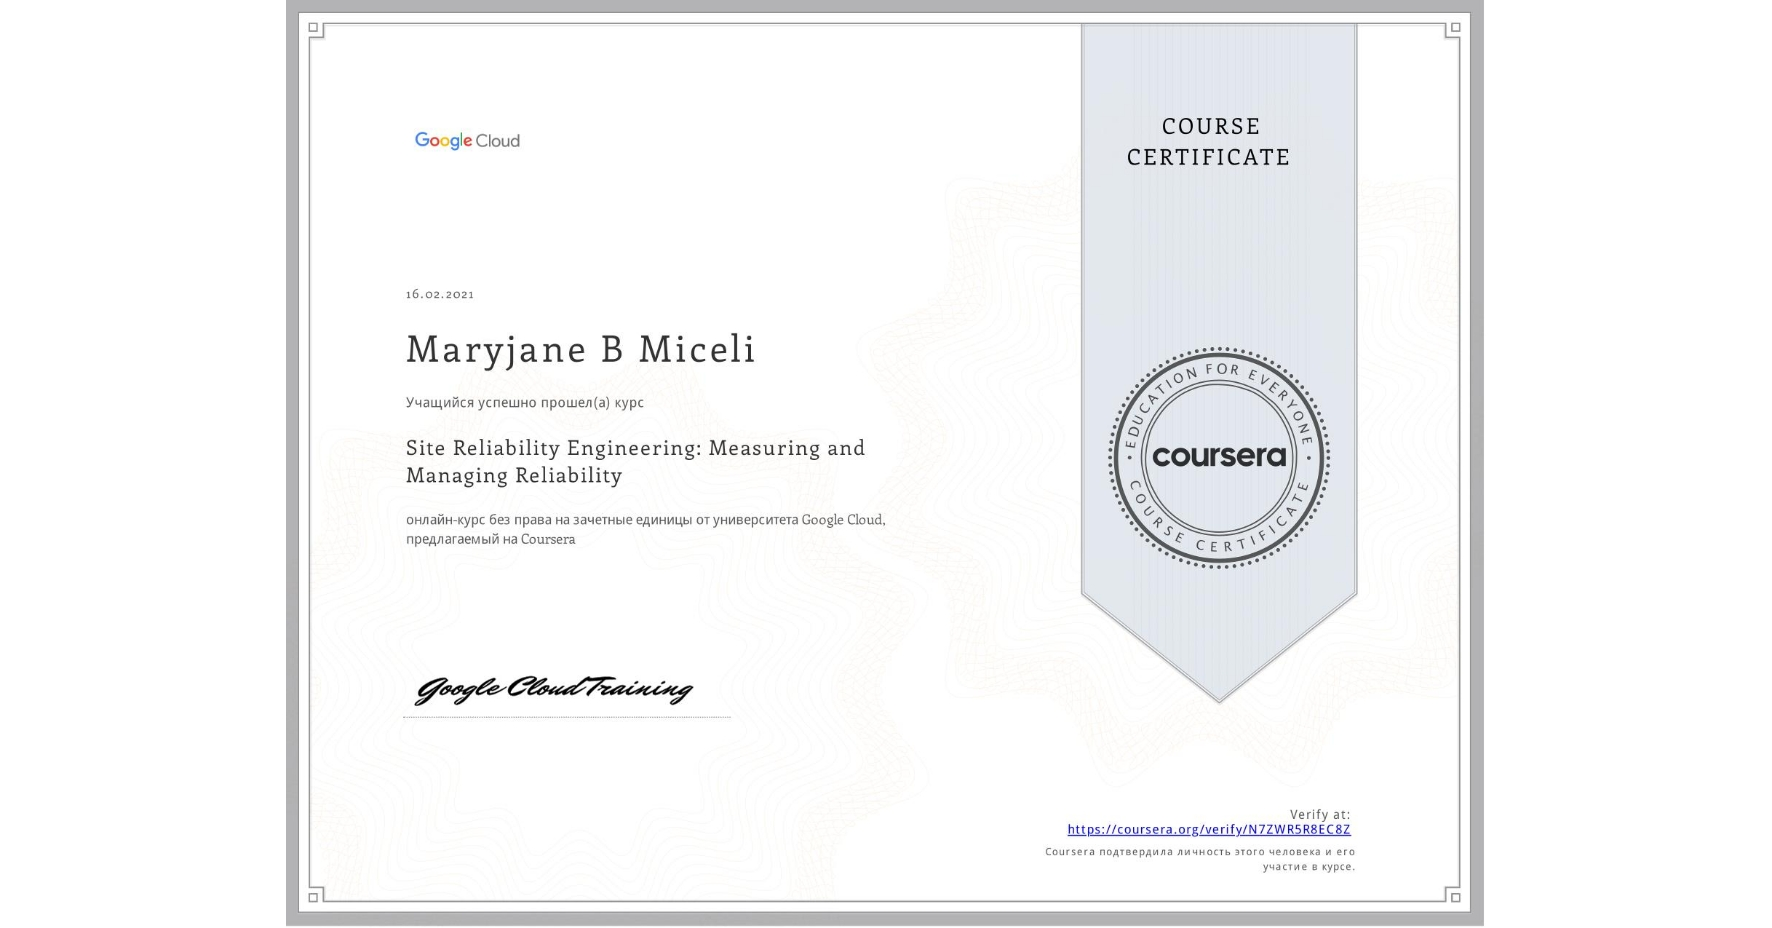 View certificate for Maryjane B Miceli, Site Reliability Engineering: Measuring and Managing Reliability, an online non-credit course authorized by Google Cloud and offered through Coursera